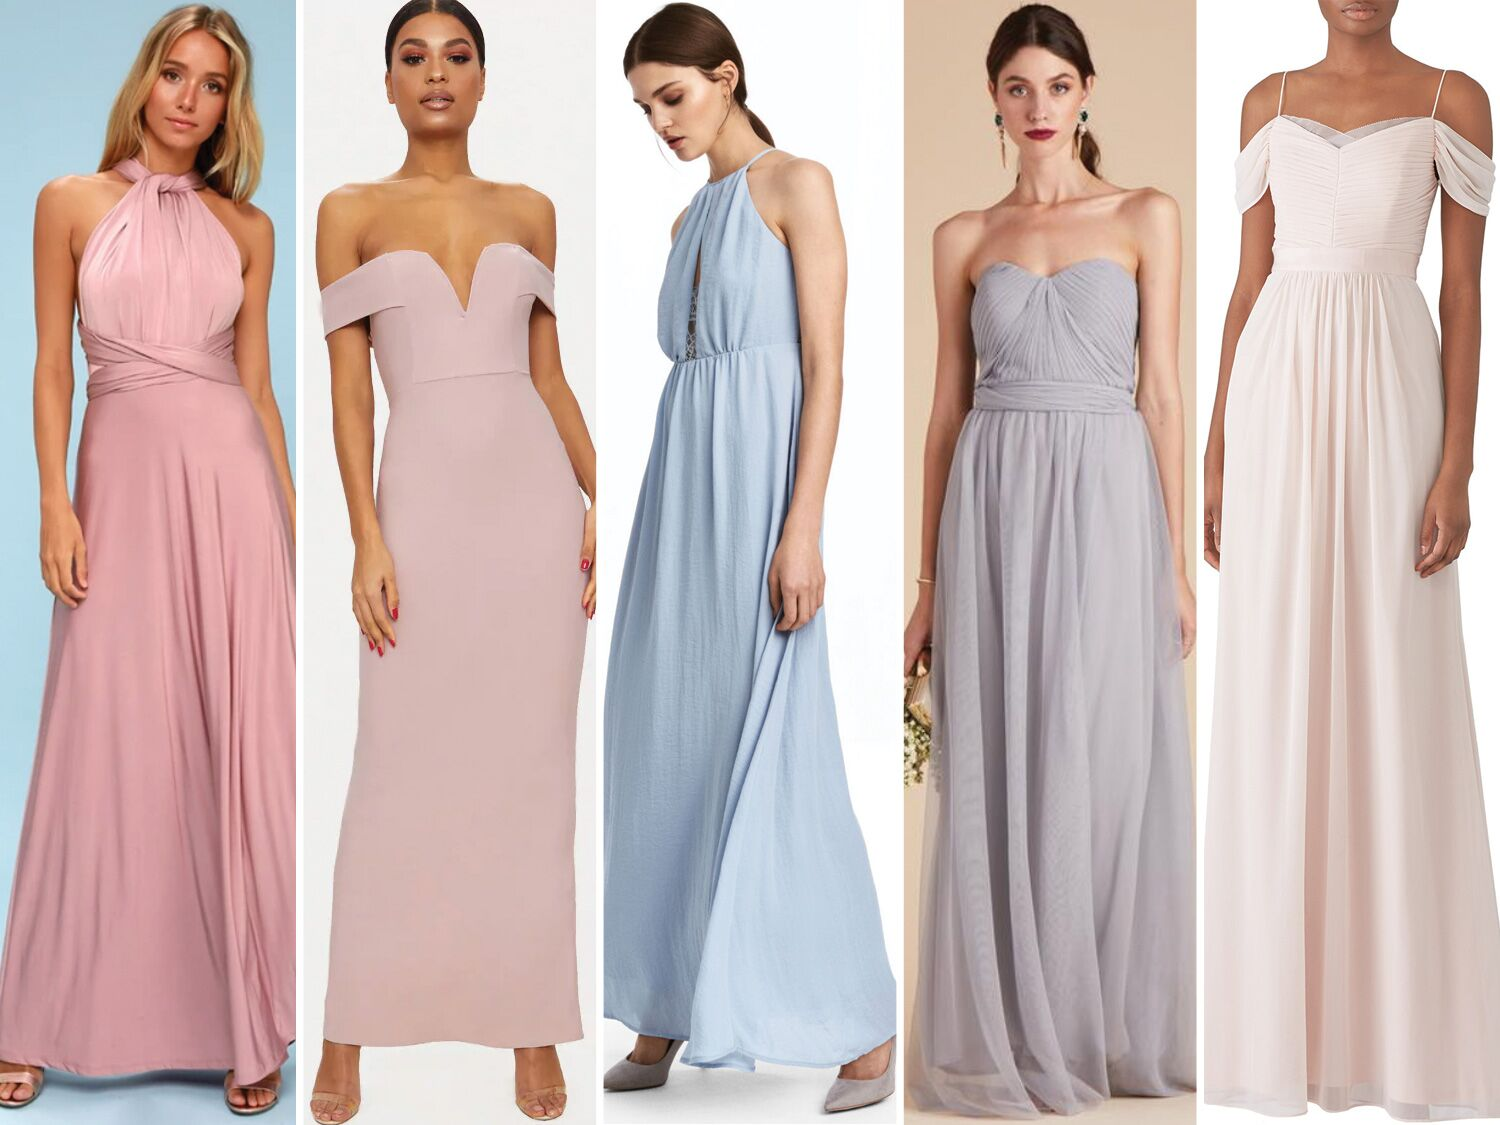 c31e29db515 55 Affordable Bridesmaid Dresses That Don t Look Cheap